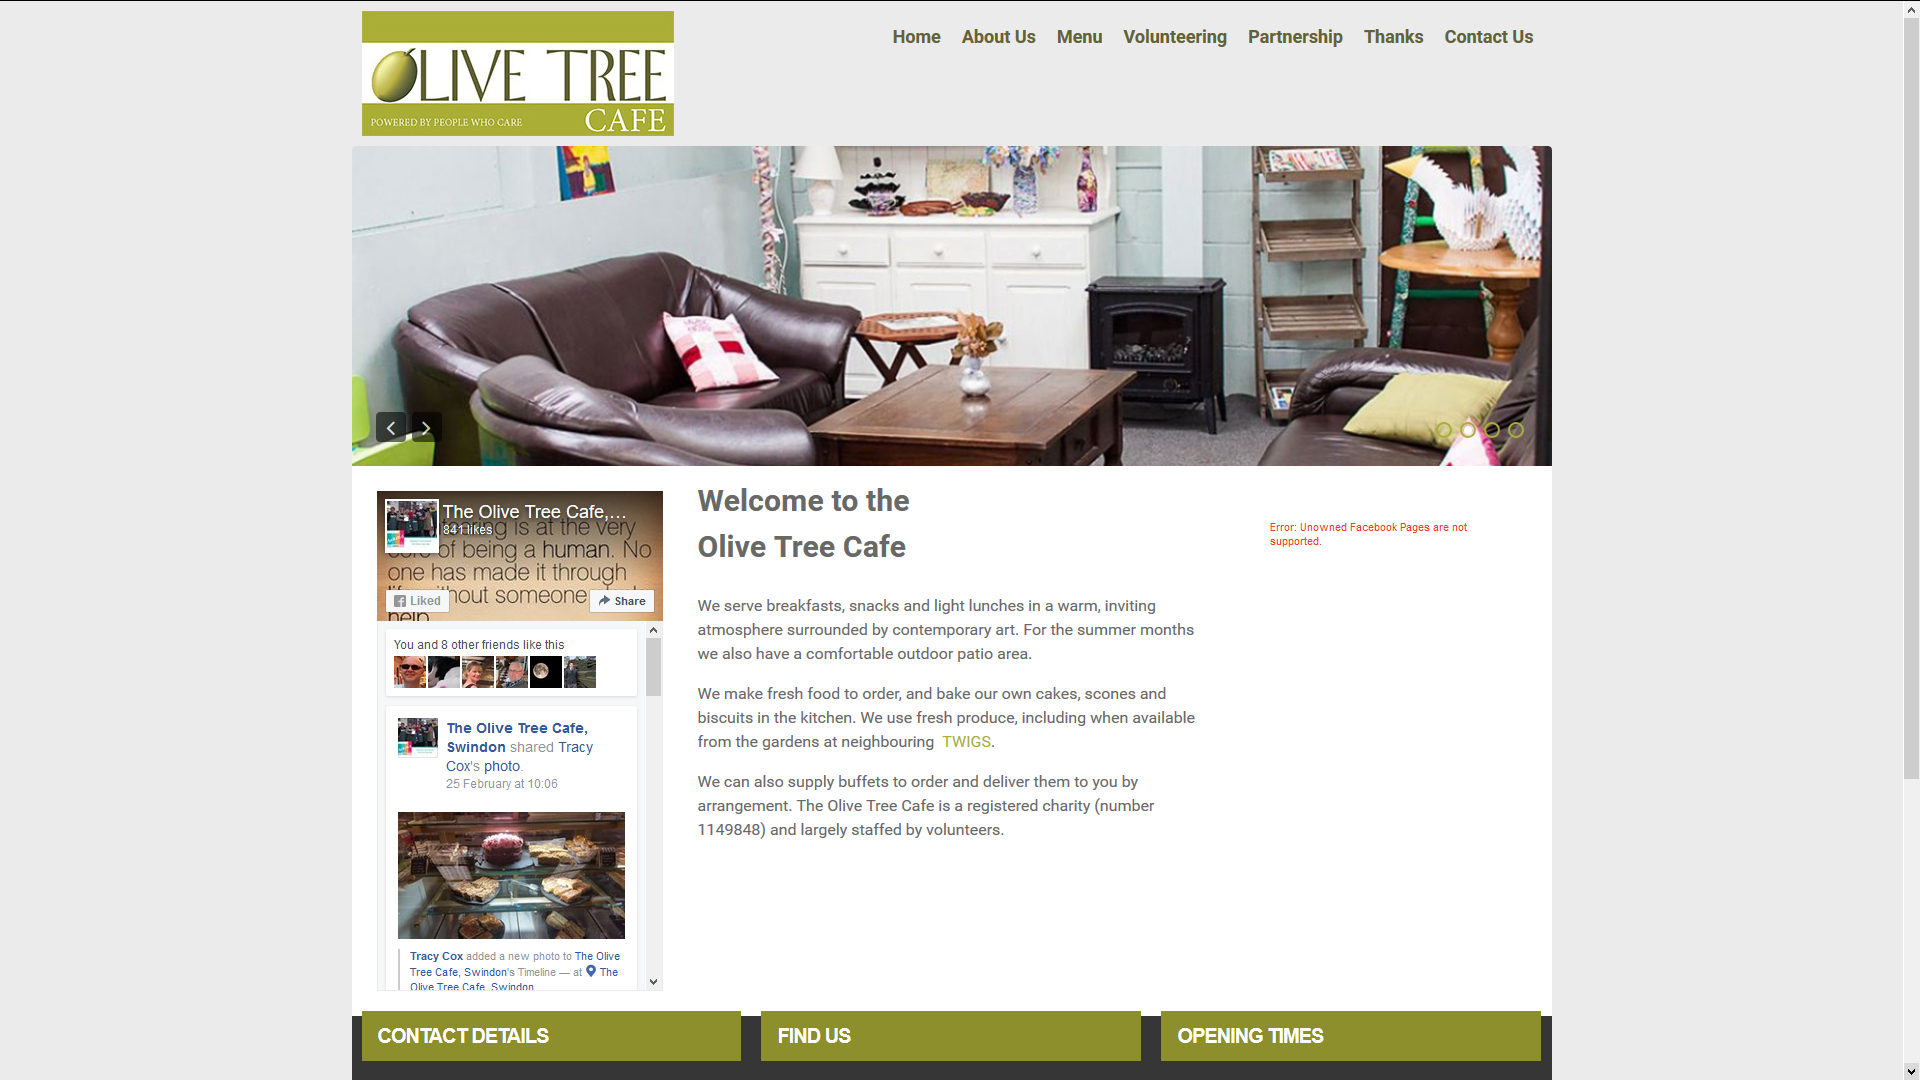 The Olive Tree Cafe